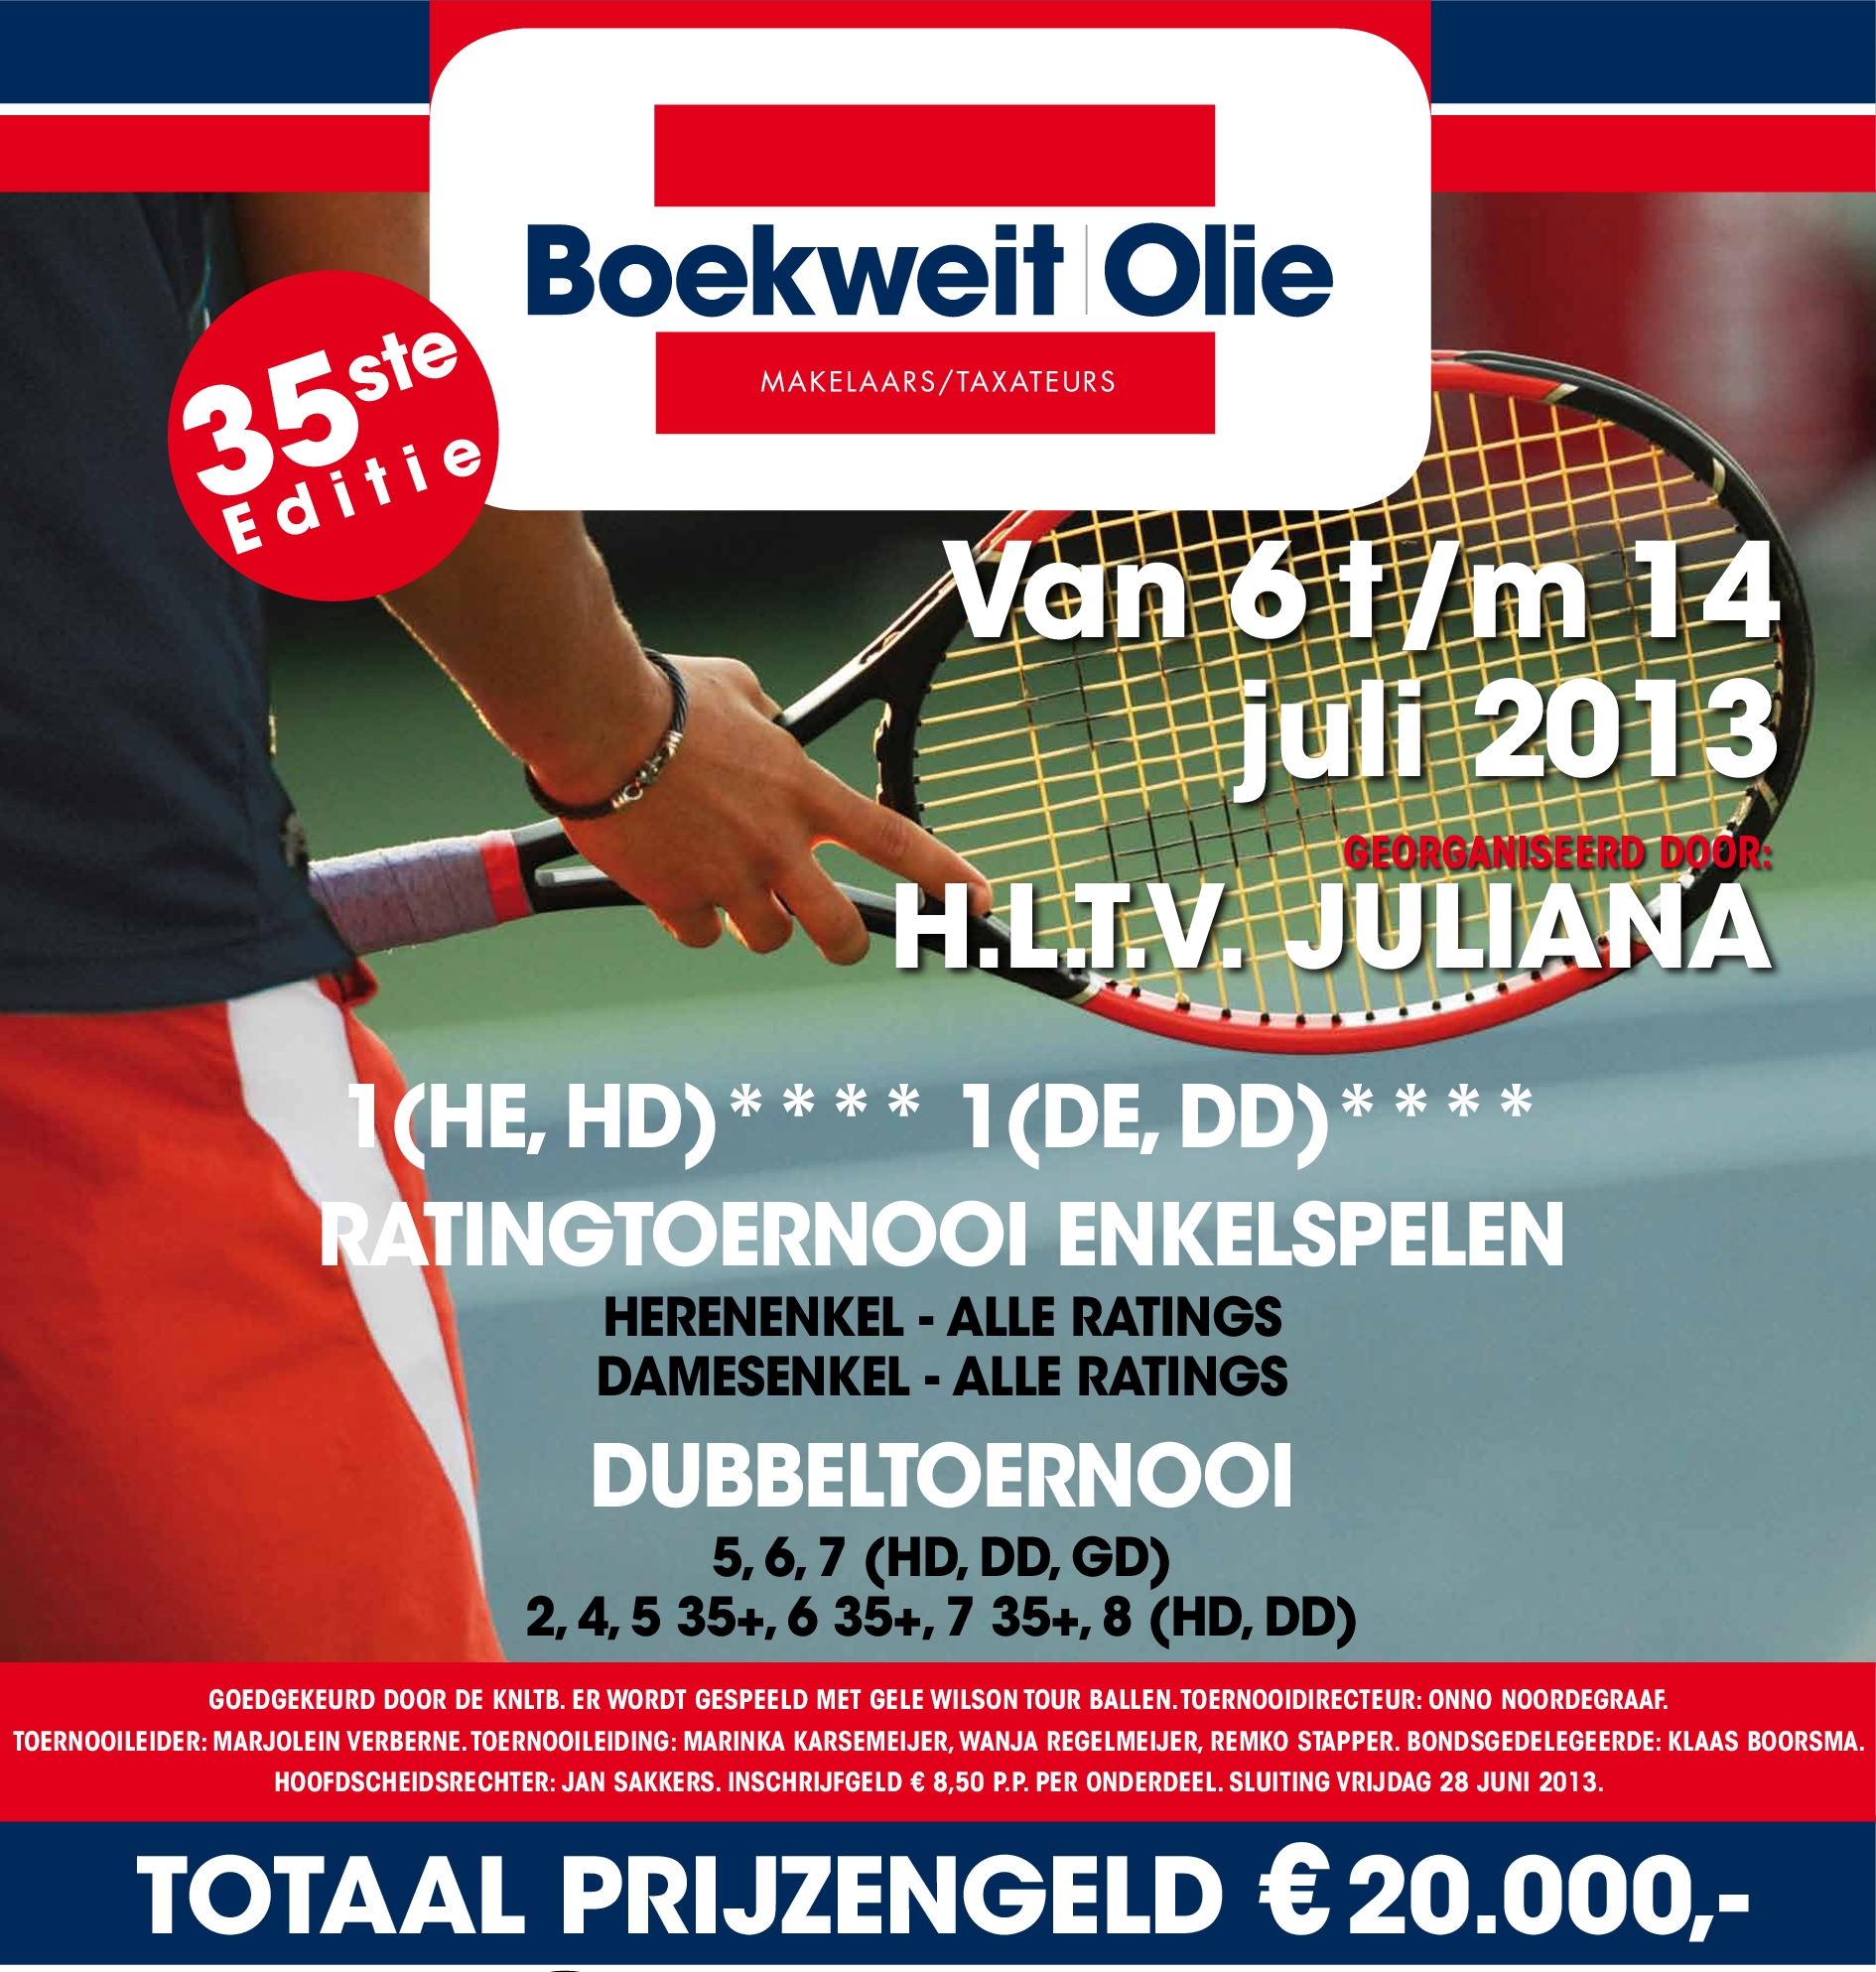 Affiche Boekweit Olie Tennis 2013